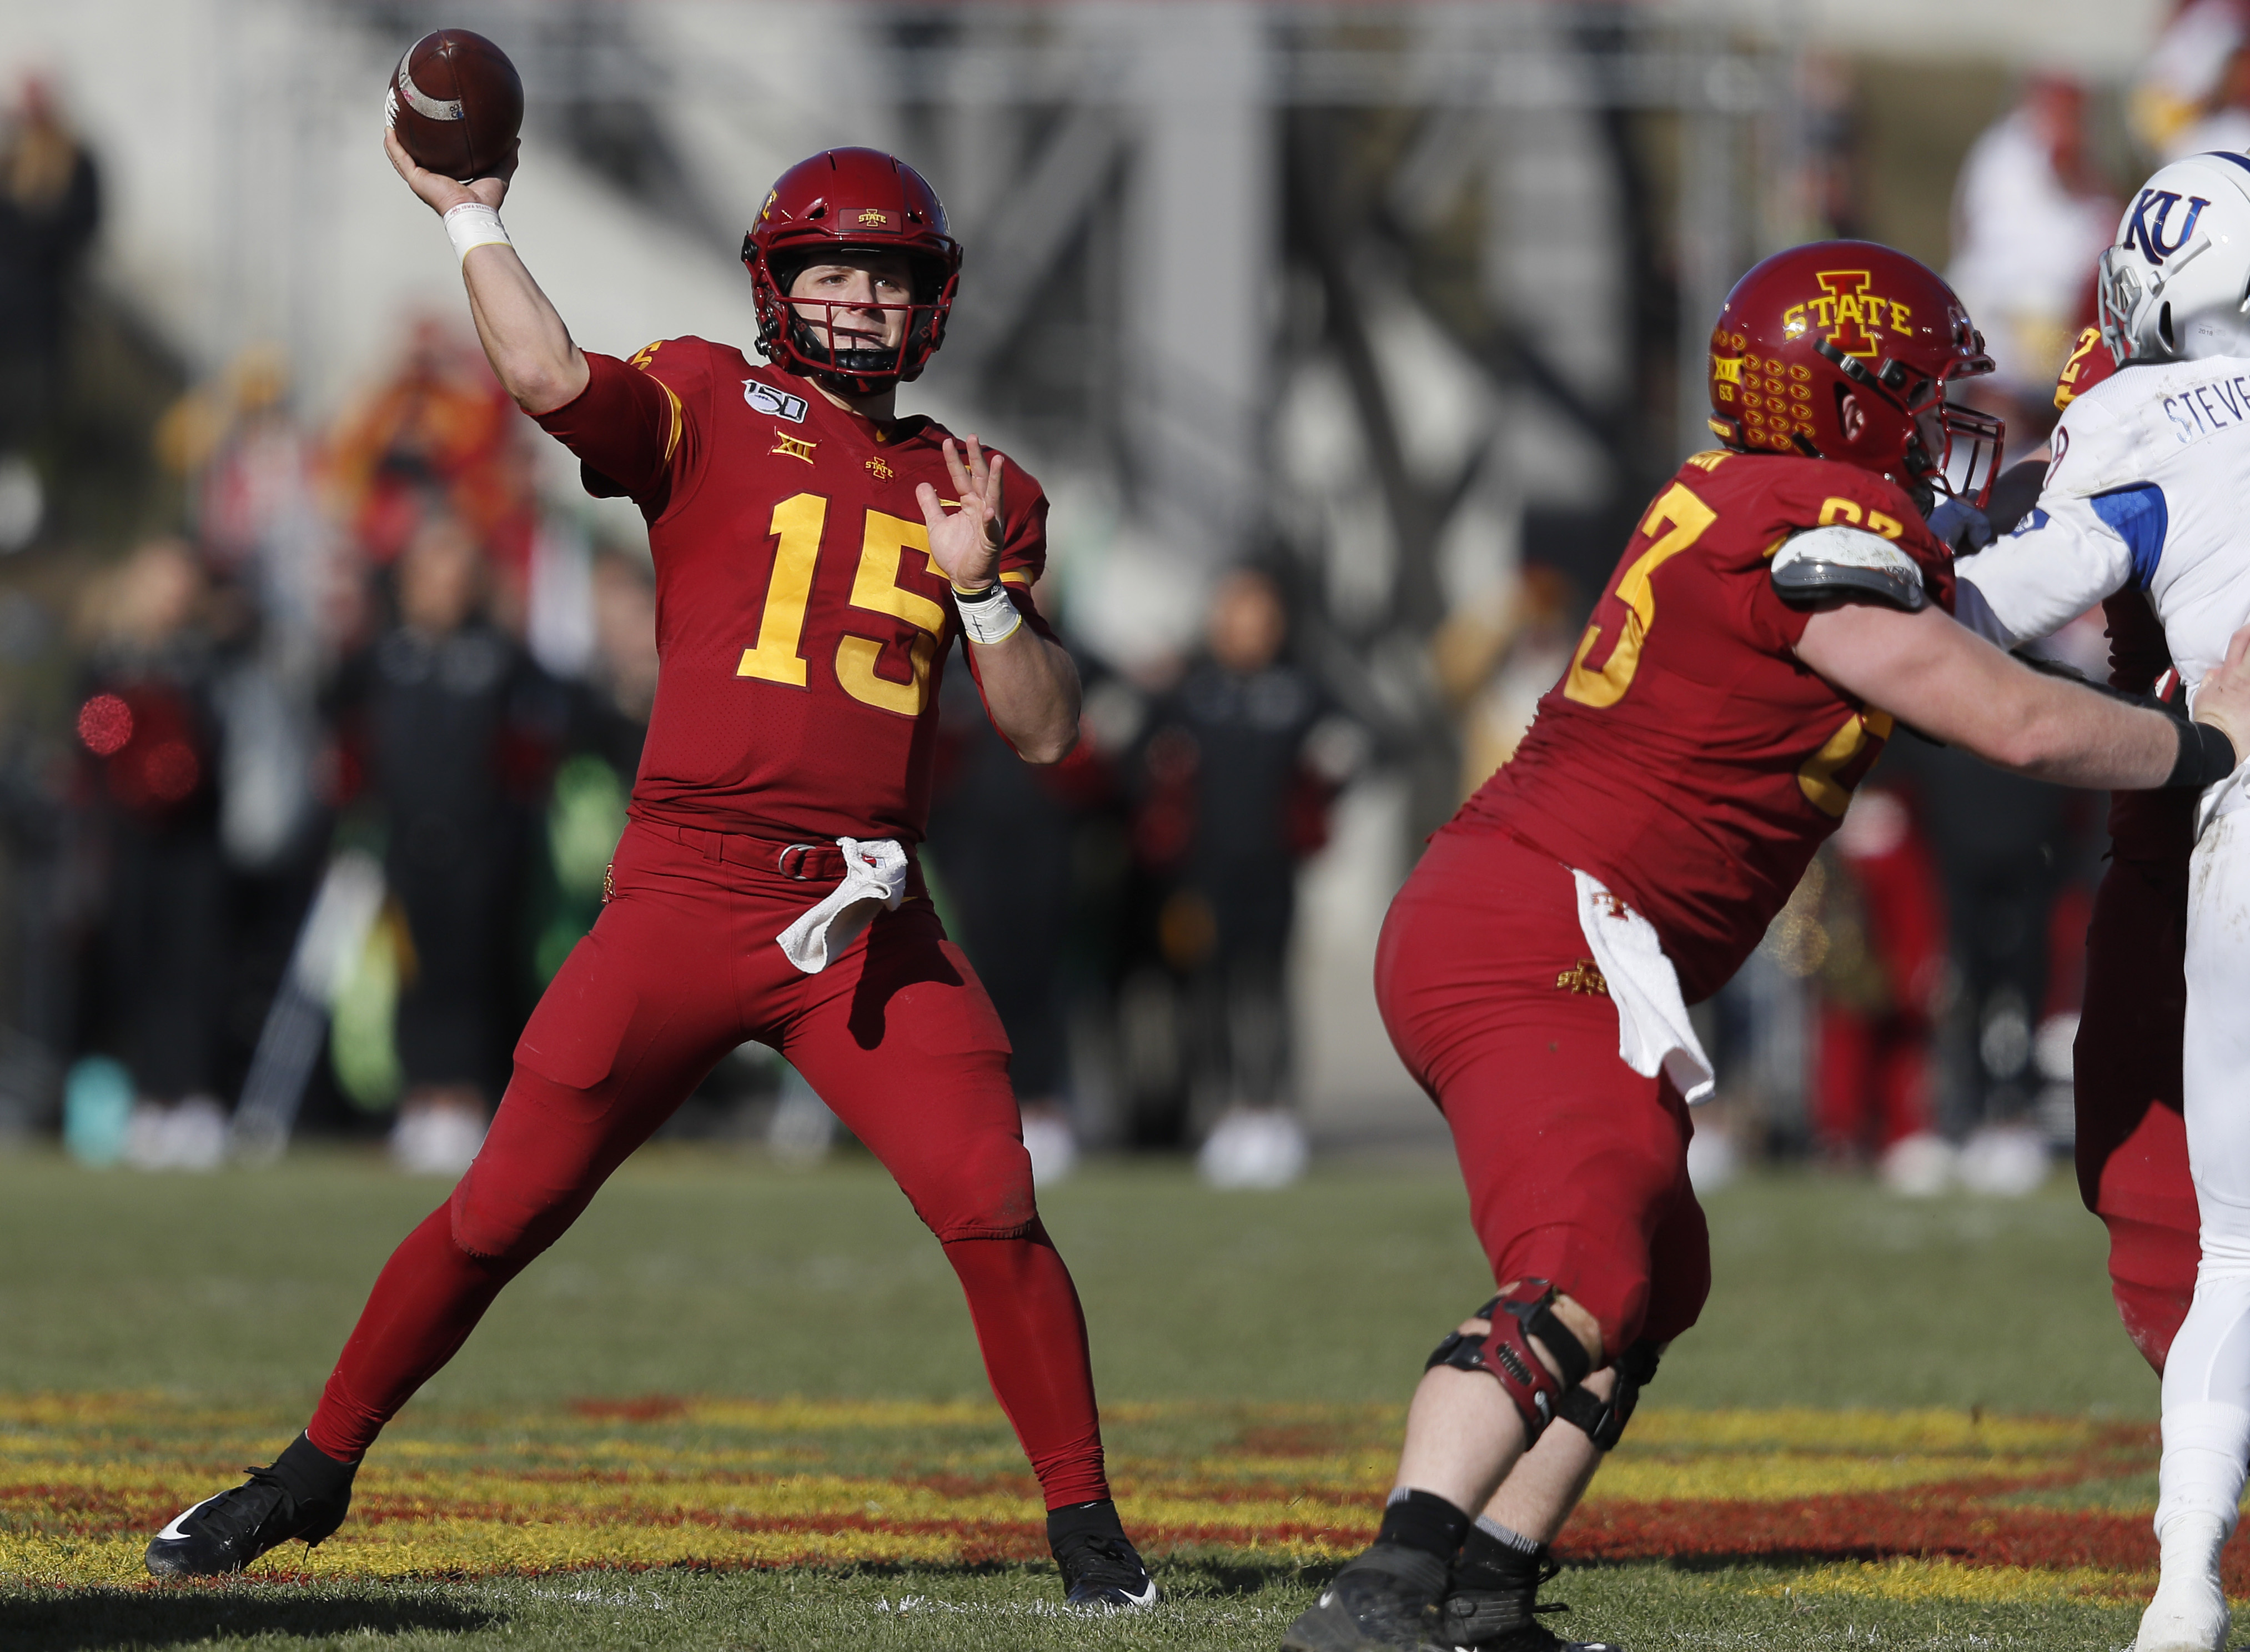 Iowa State rallies to top Kansas 41-31